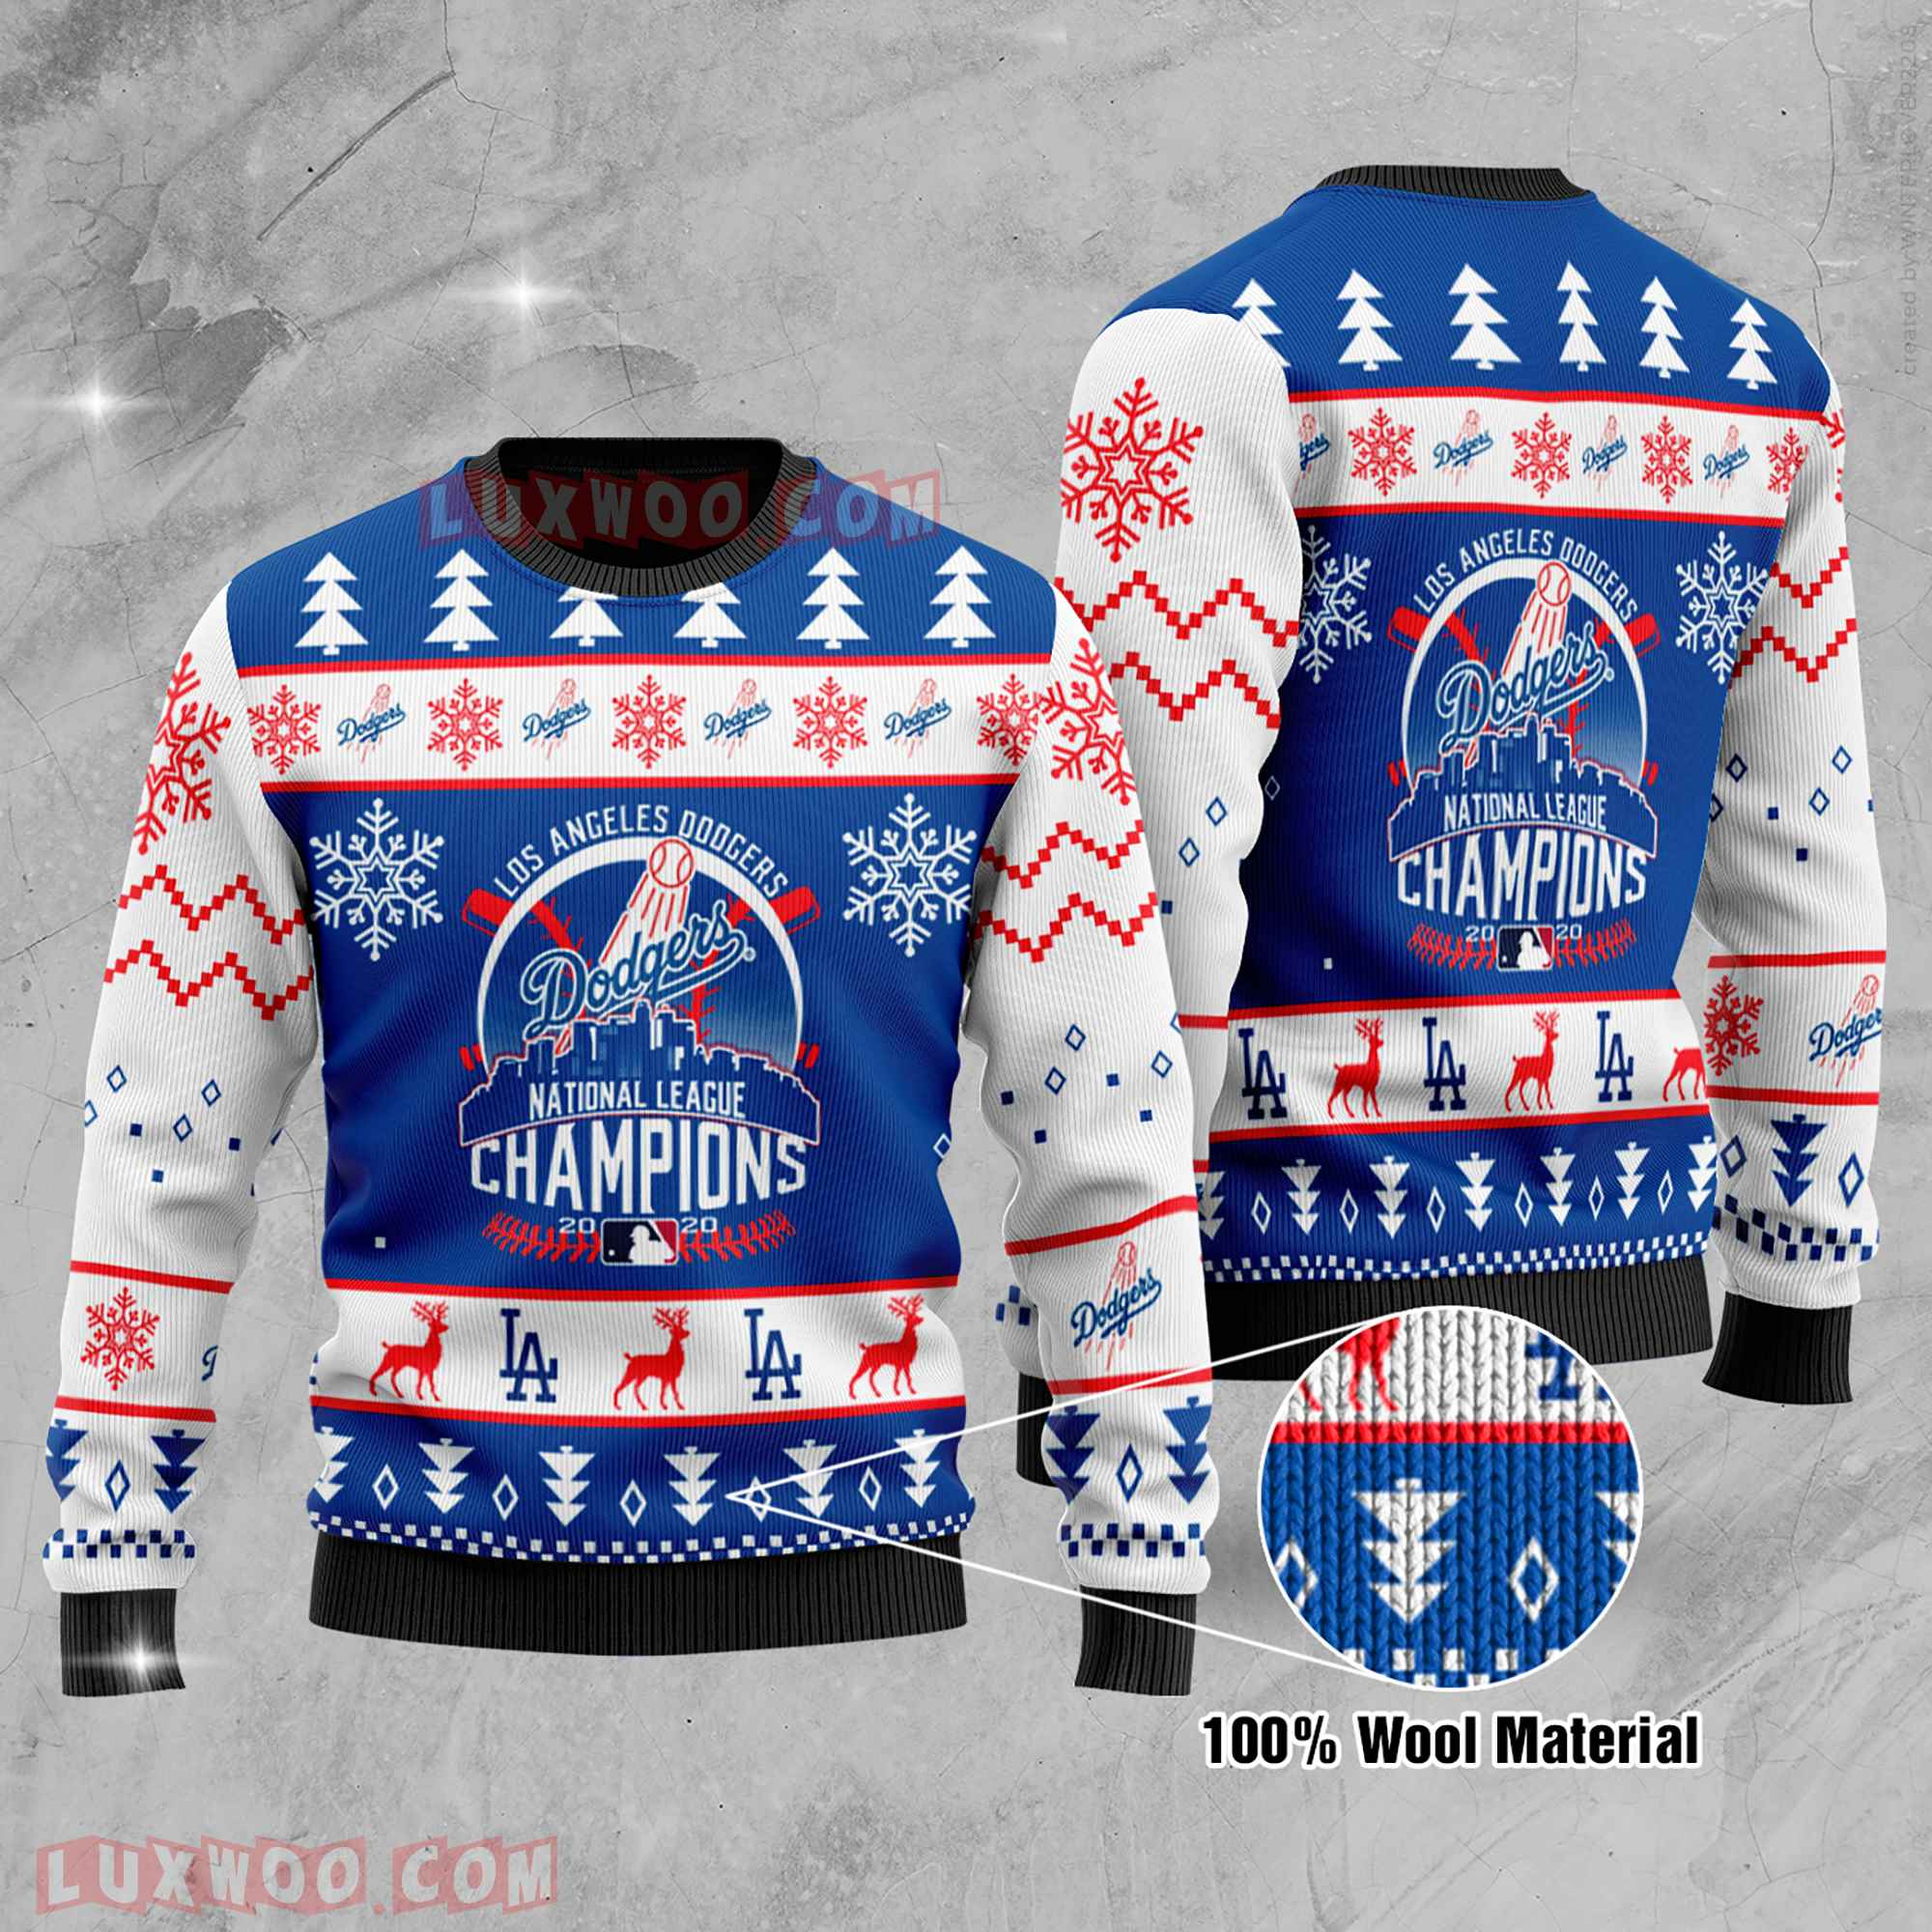 Los Angeles Dodgers National League Champions La Dodgers National League Champions Ugly Christmas Sweater Wool Material